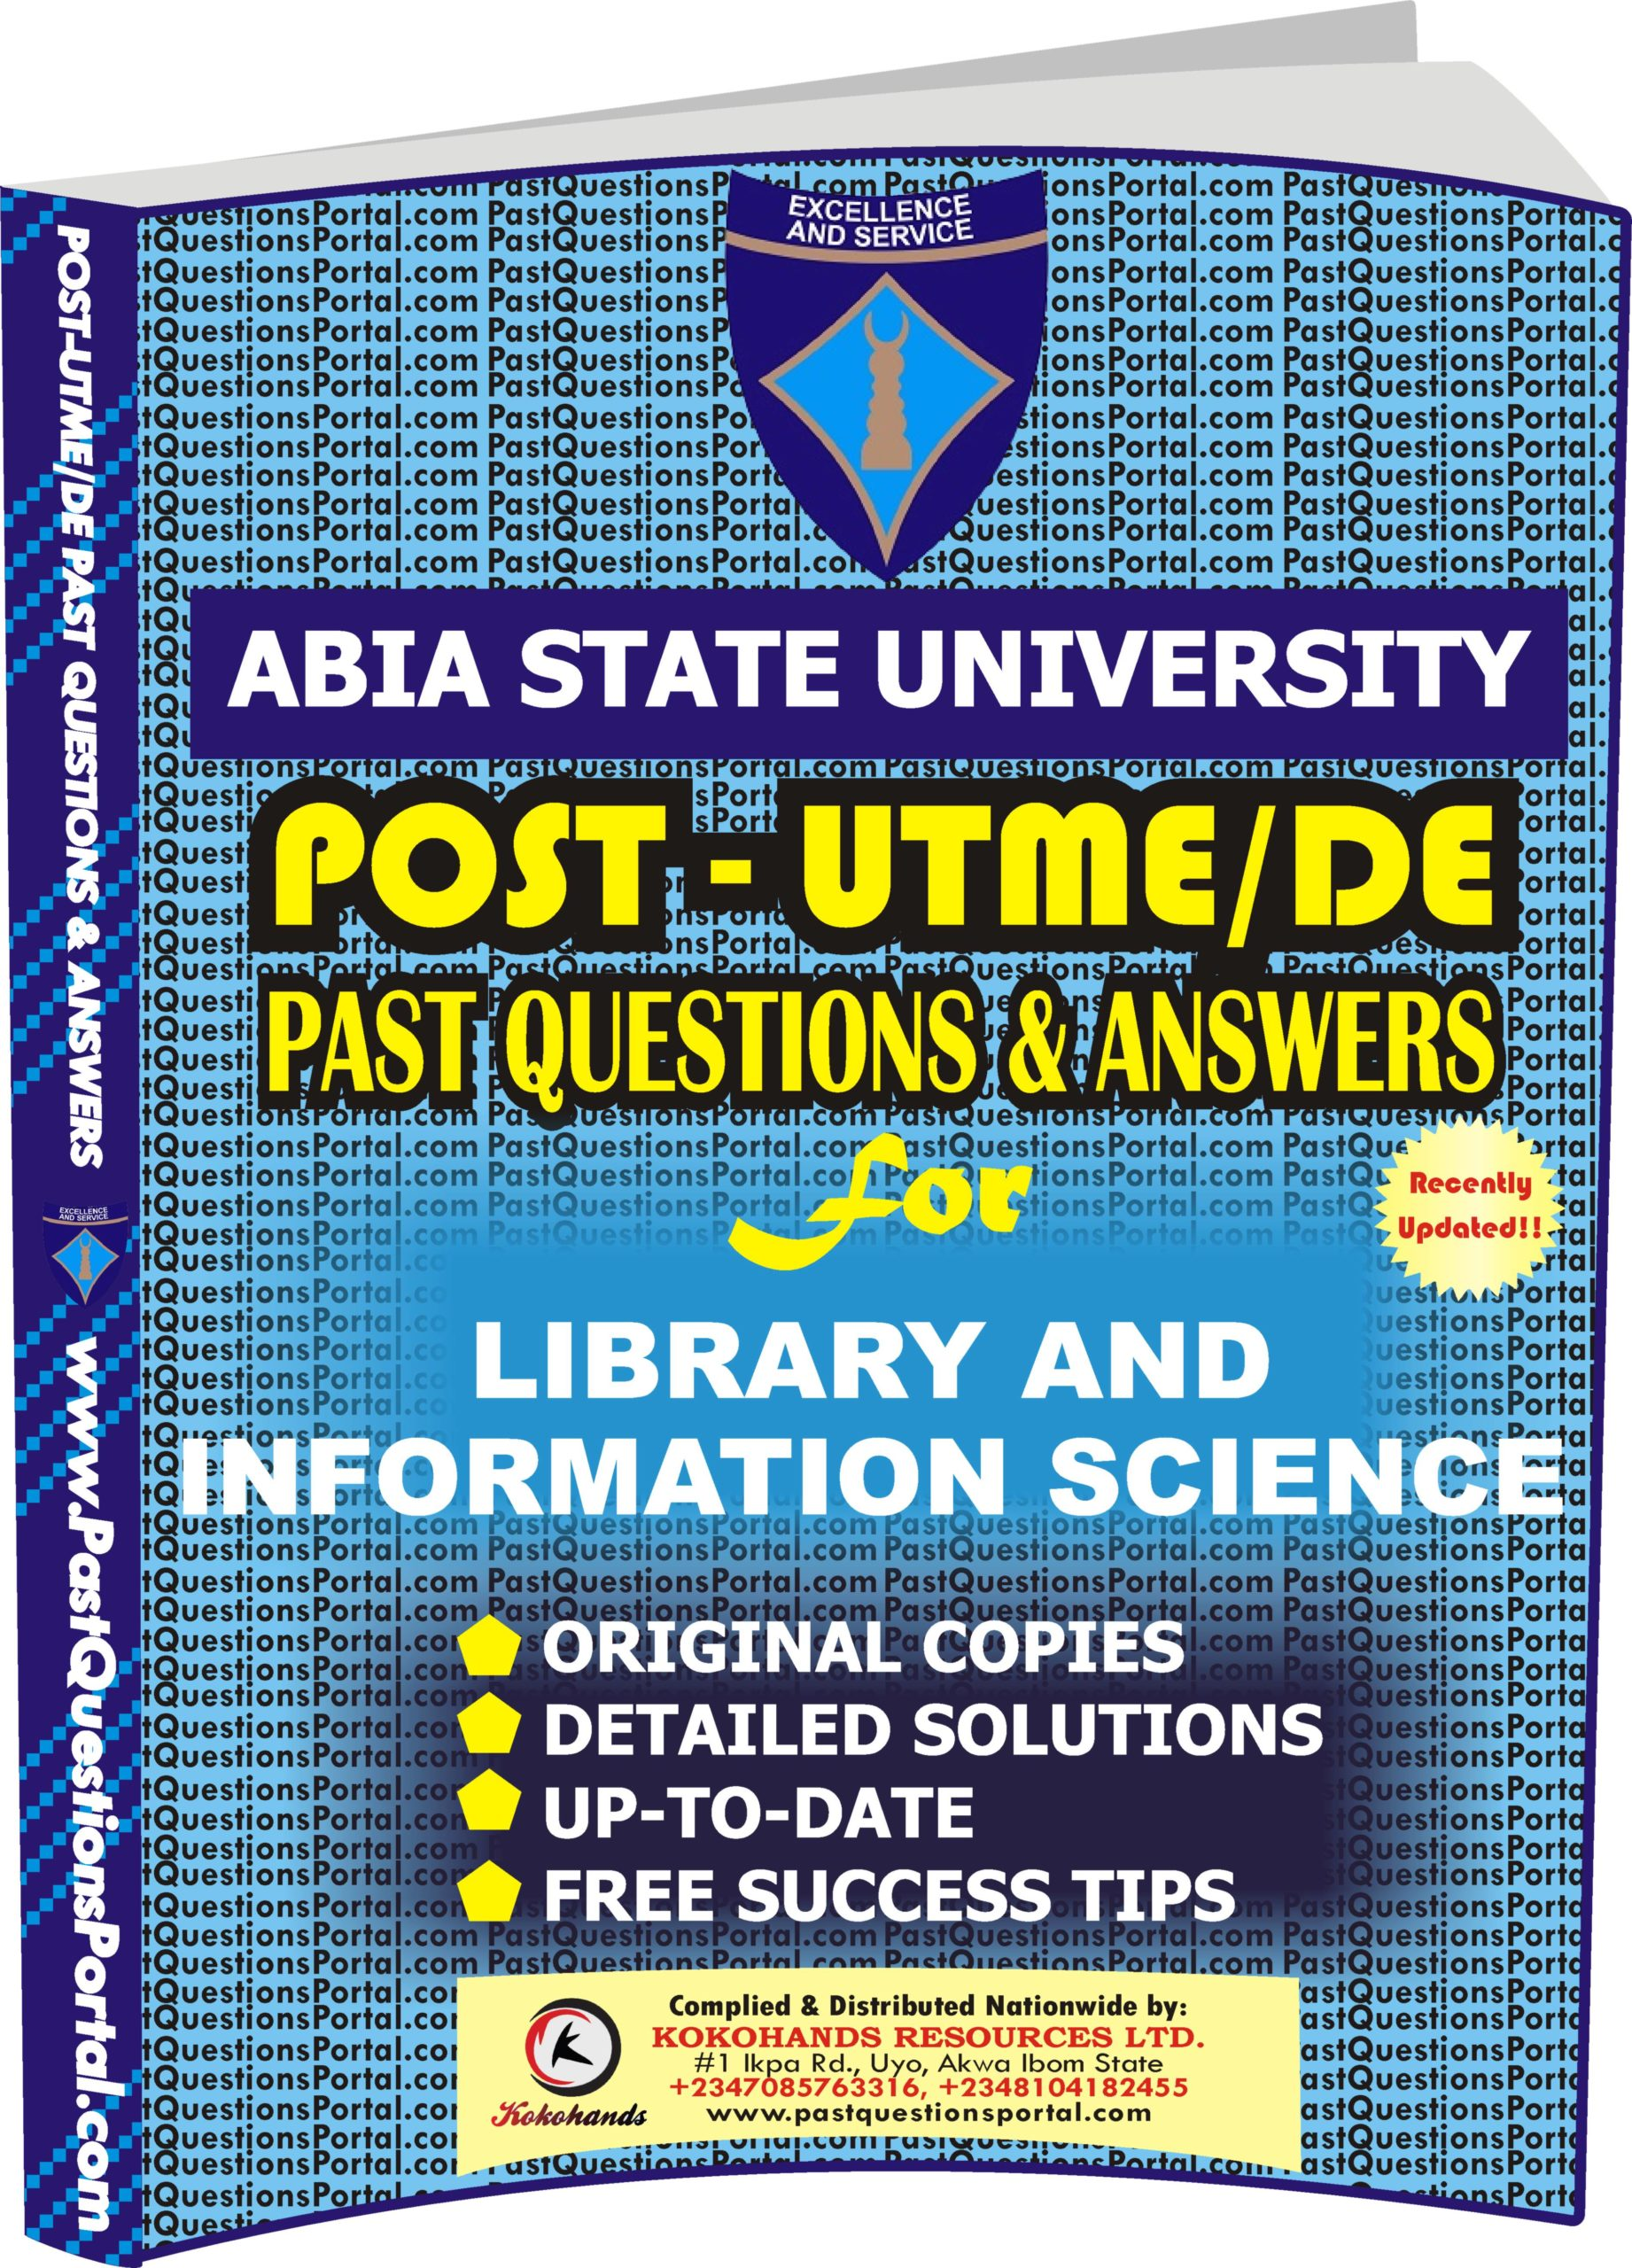 ABSU Post UTME Past Questions for Library and Information Science